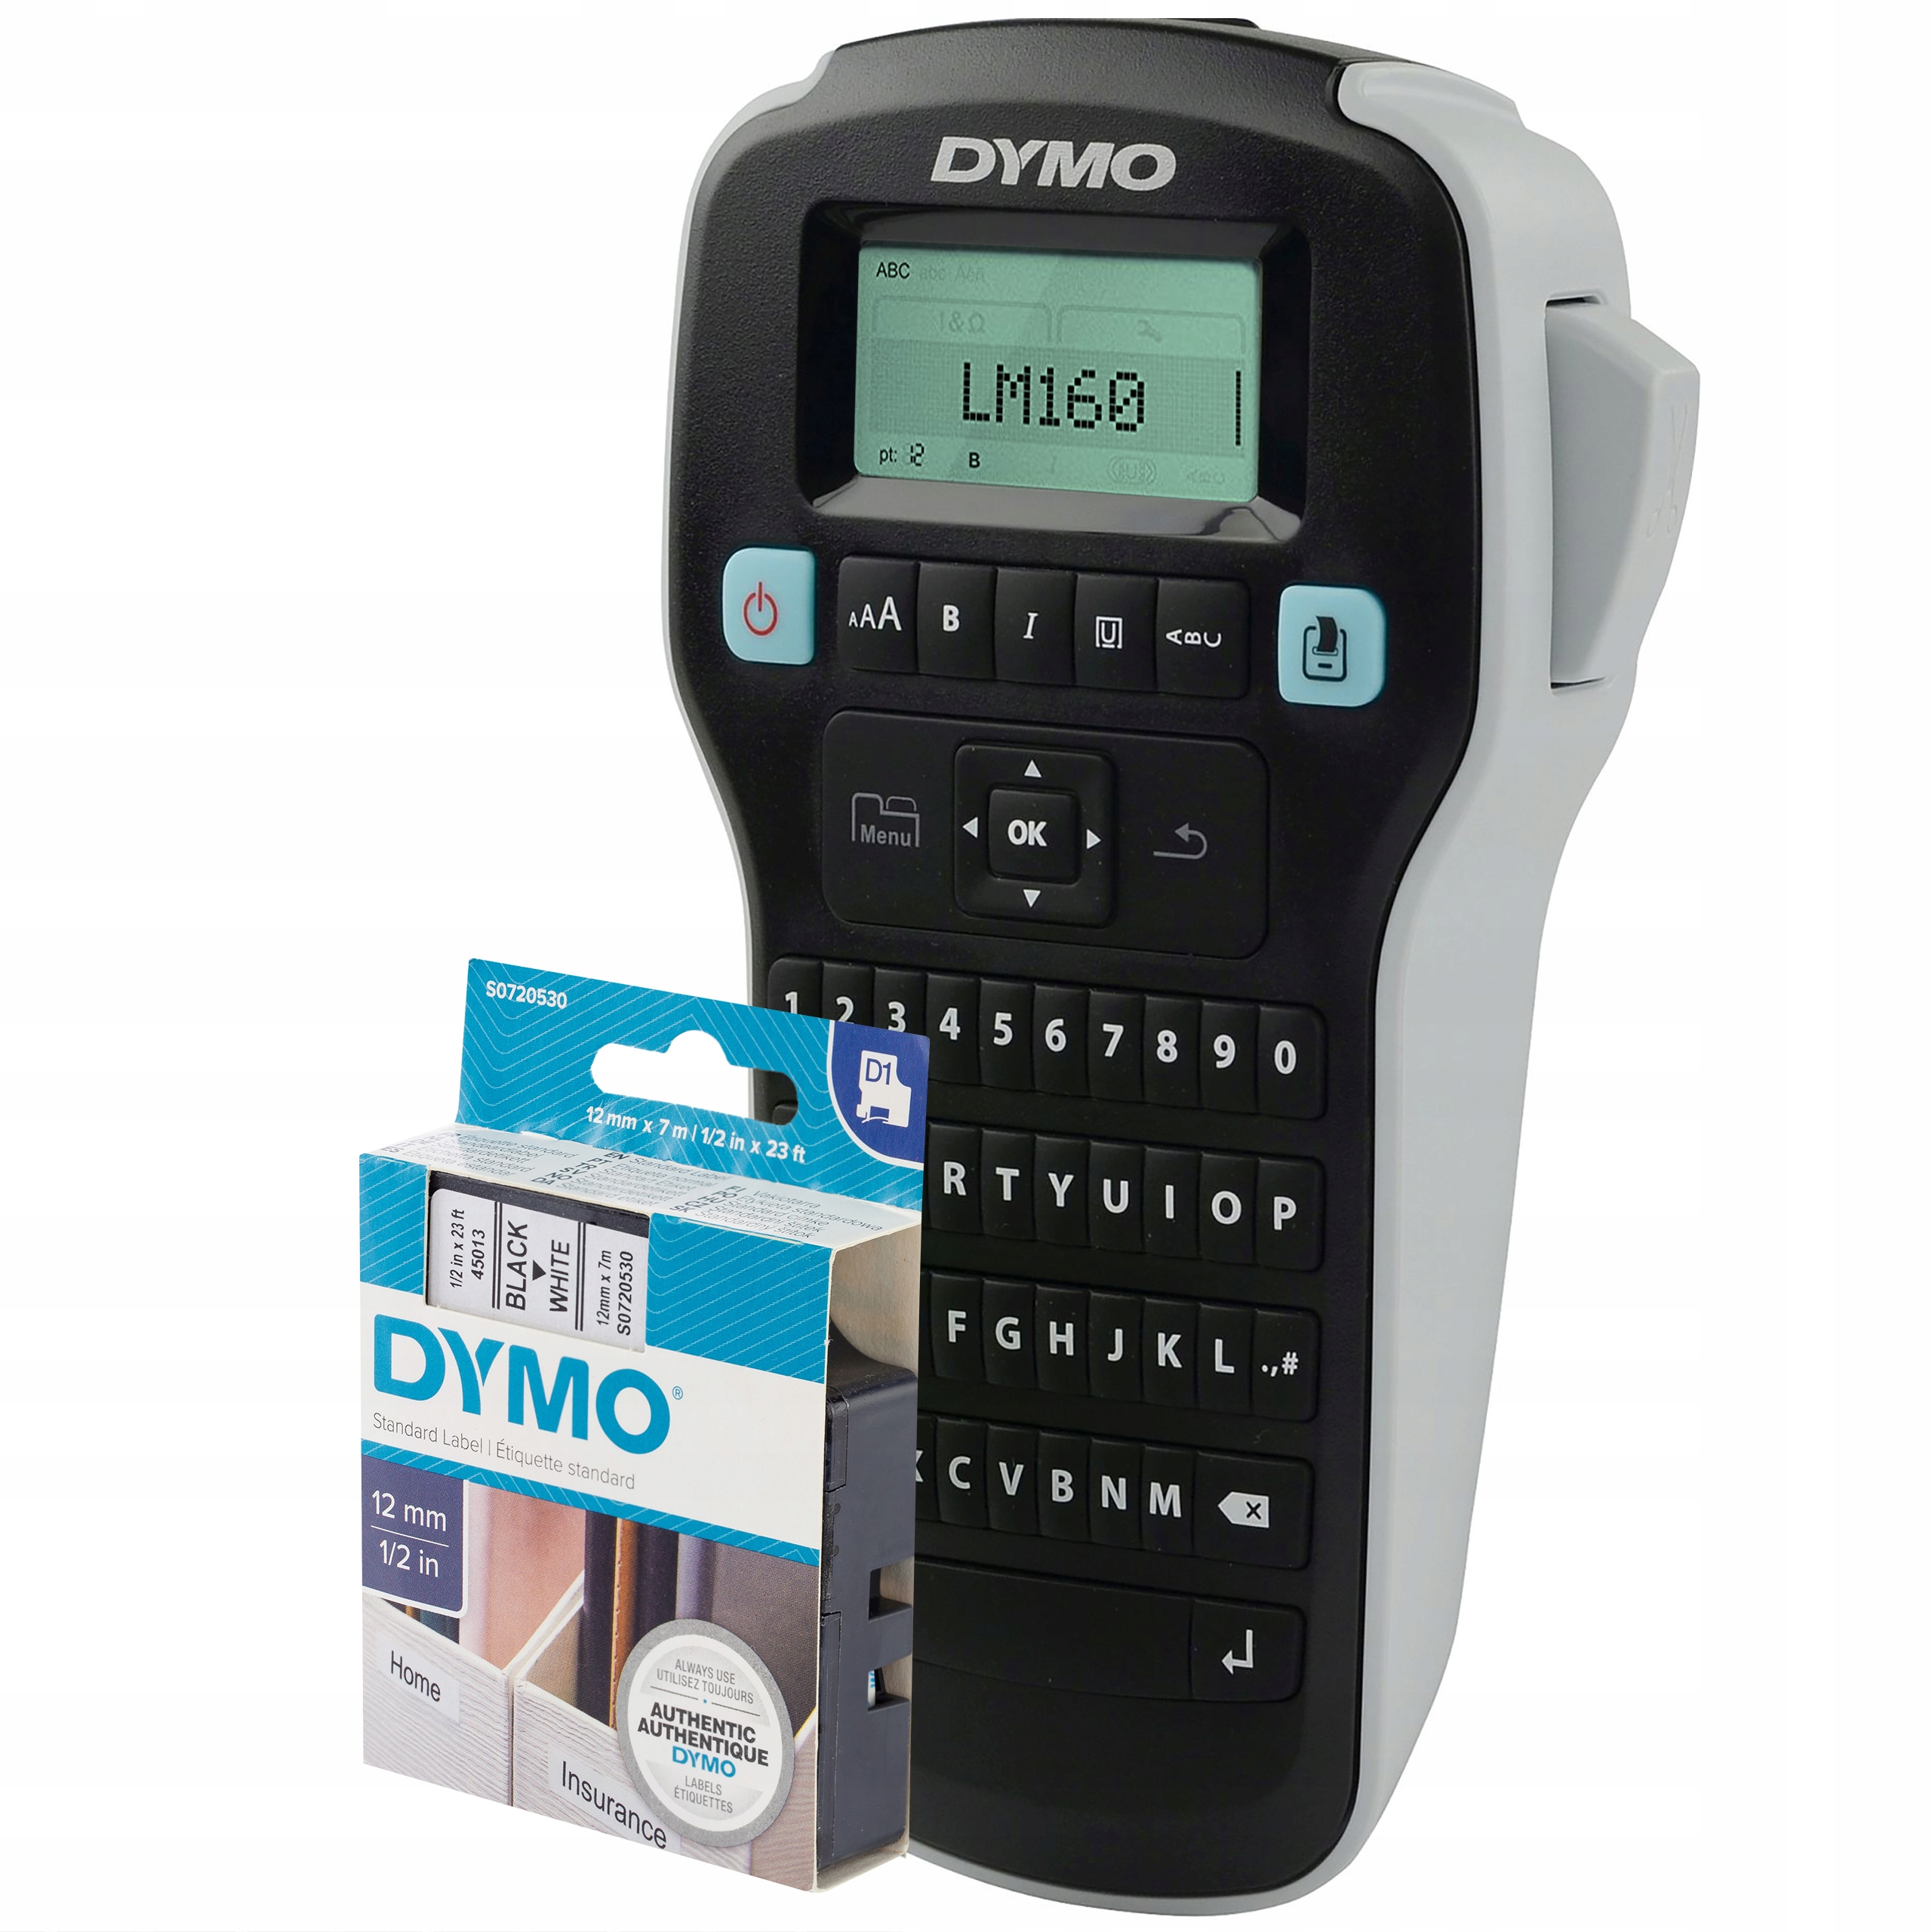 DYMO LabelManager LMR 160 Label